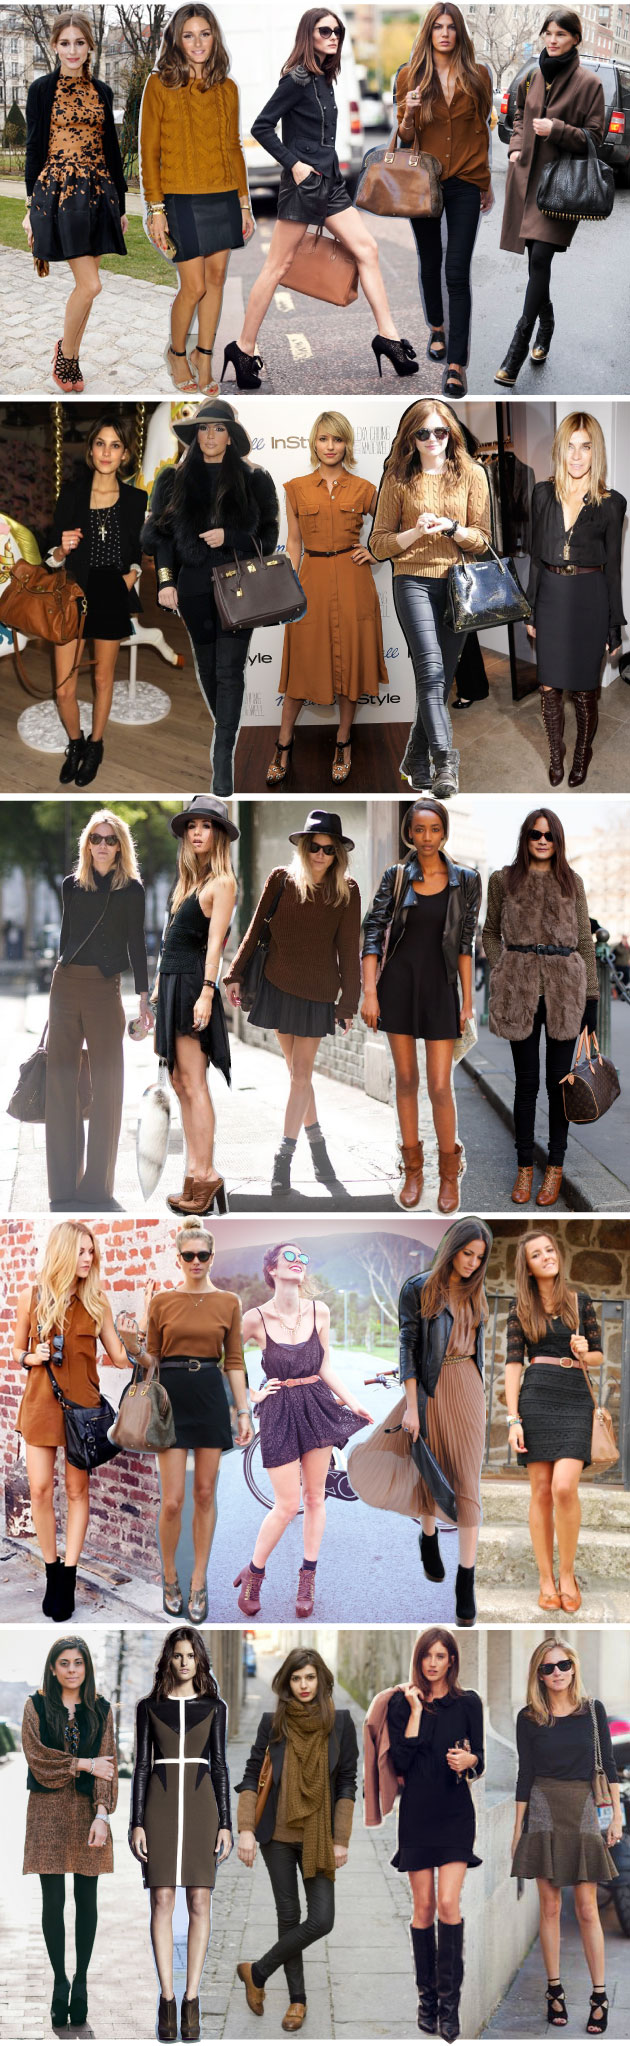 combina-marrom-preto-looks-brown-black-estilo-street-style-2